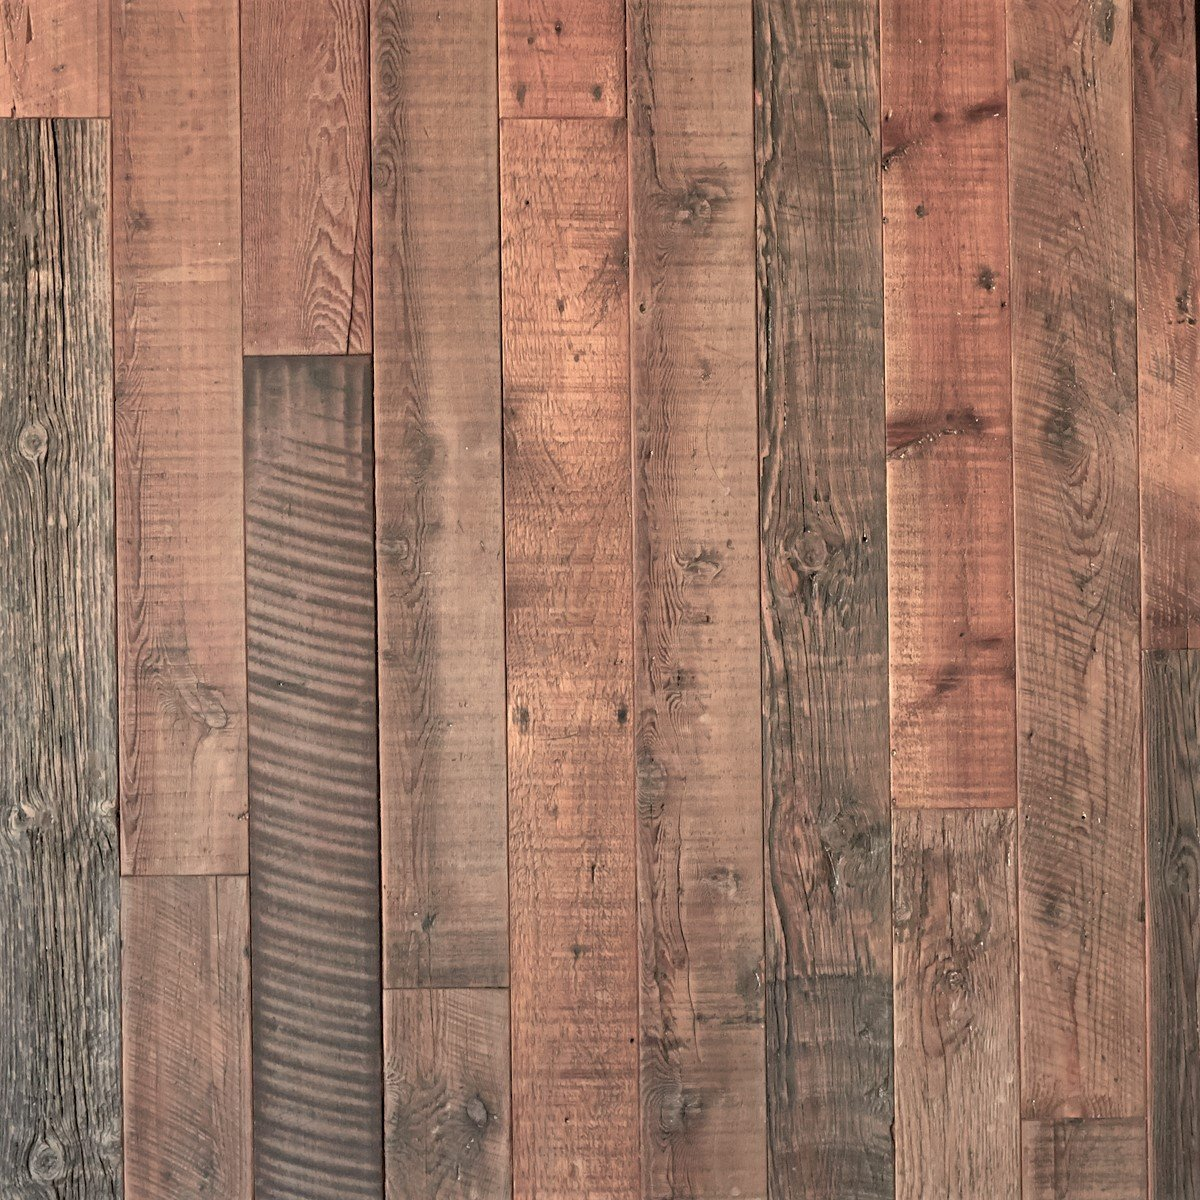 match wood mix texas sydney sumptuous recycled and flooring floor old design reclaimed perth brisbane ideas uk